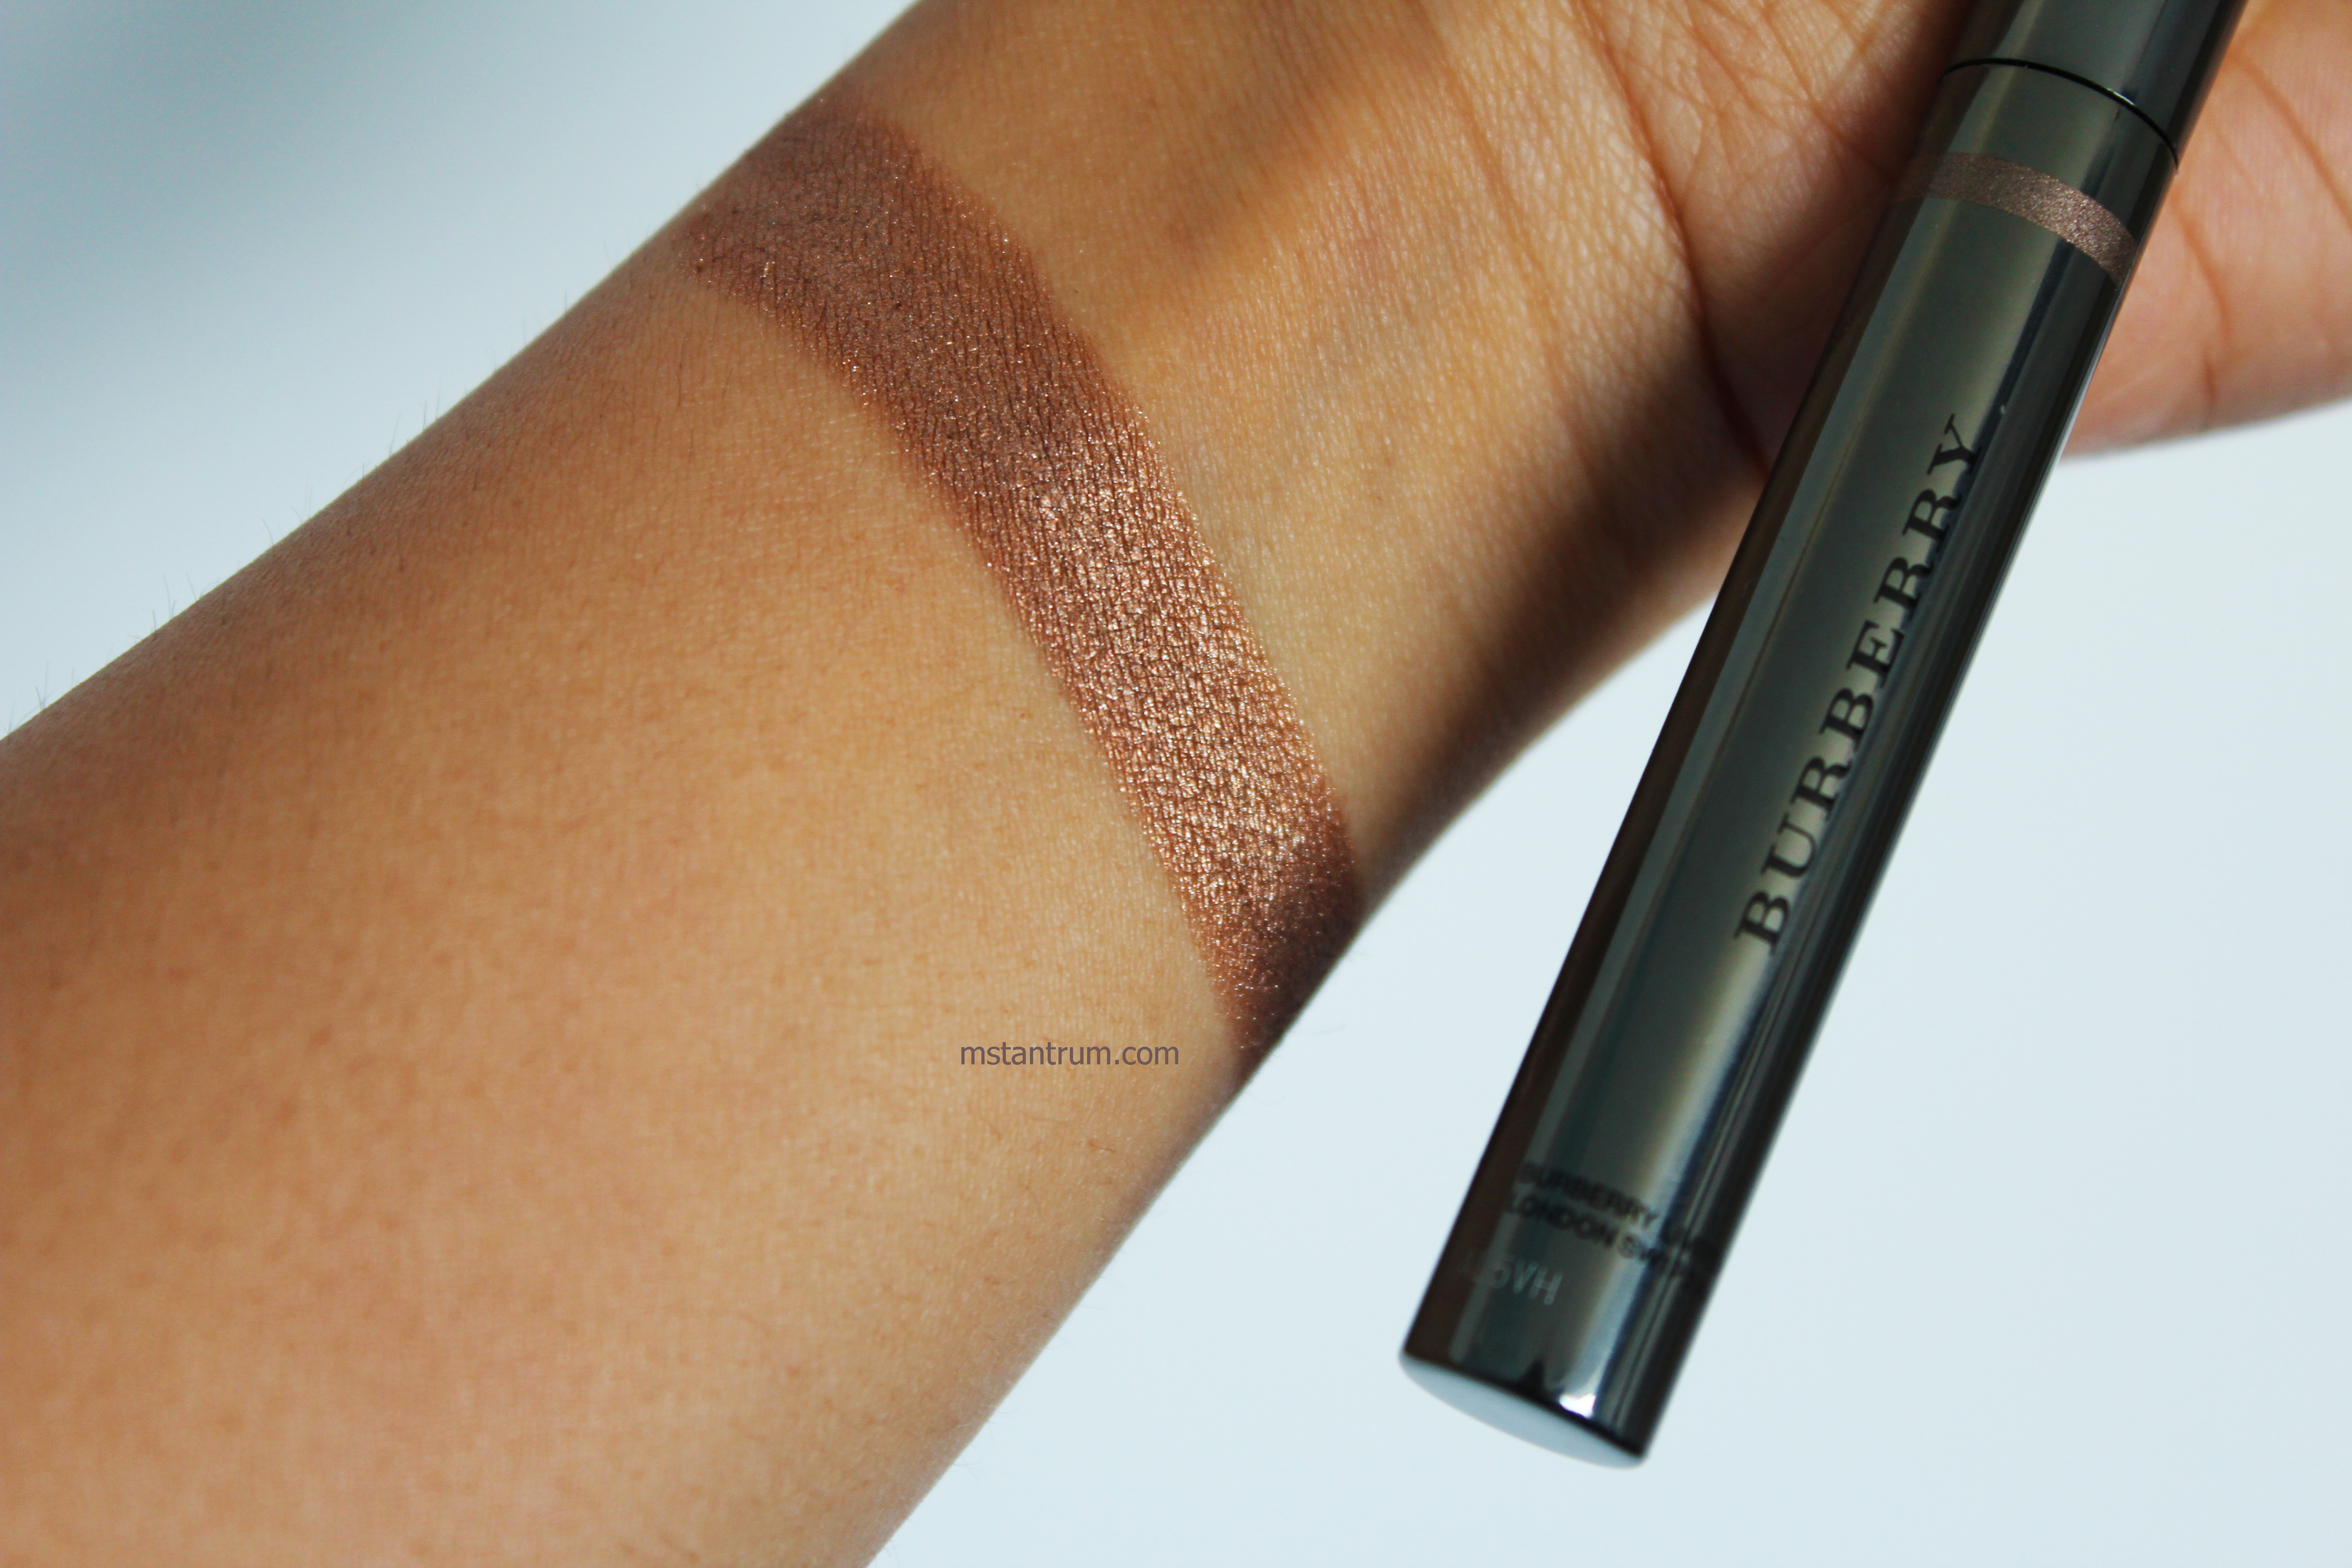 burberry pale copper eyeshadow stick swatch without Flash